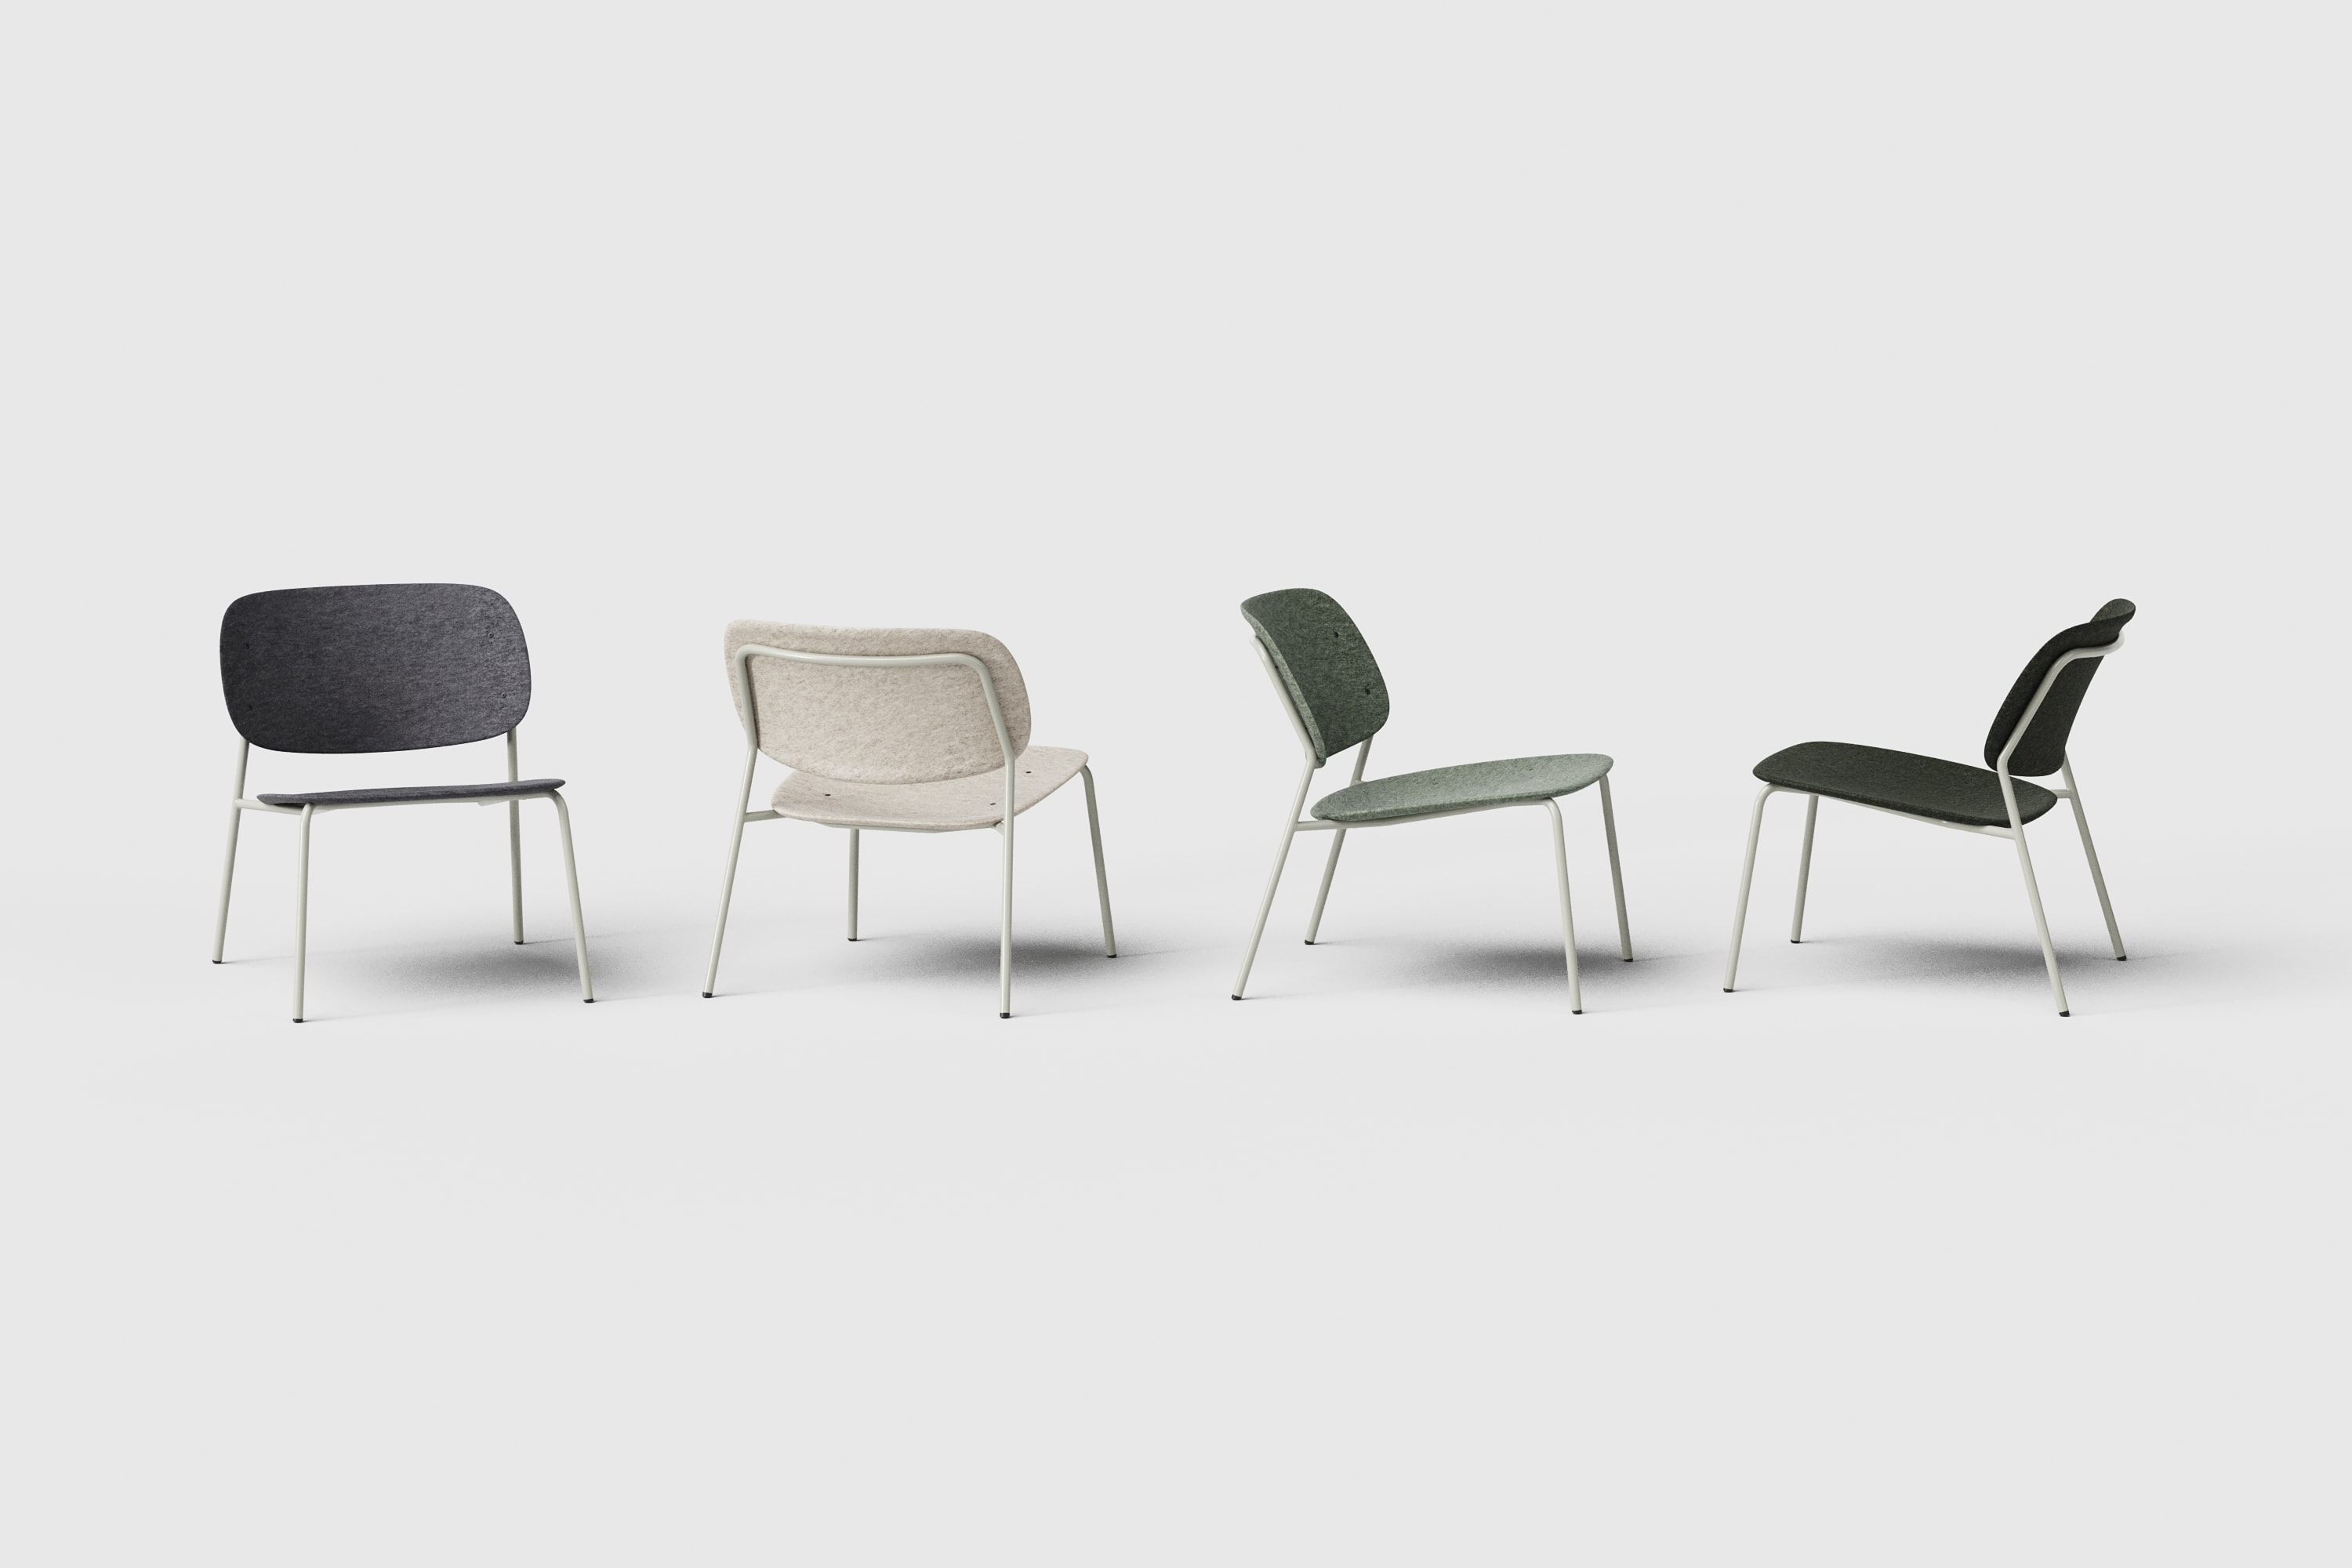 Introducing Hale Lounge Chair